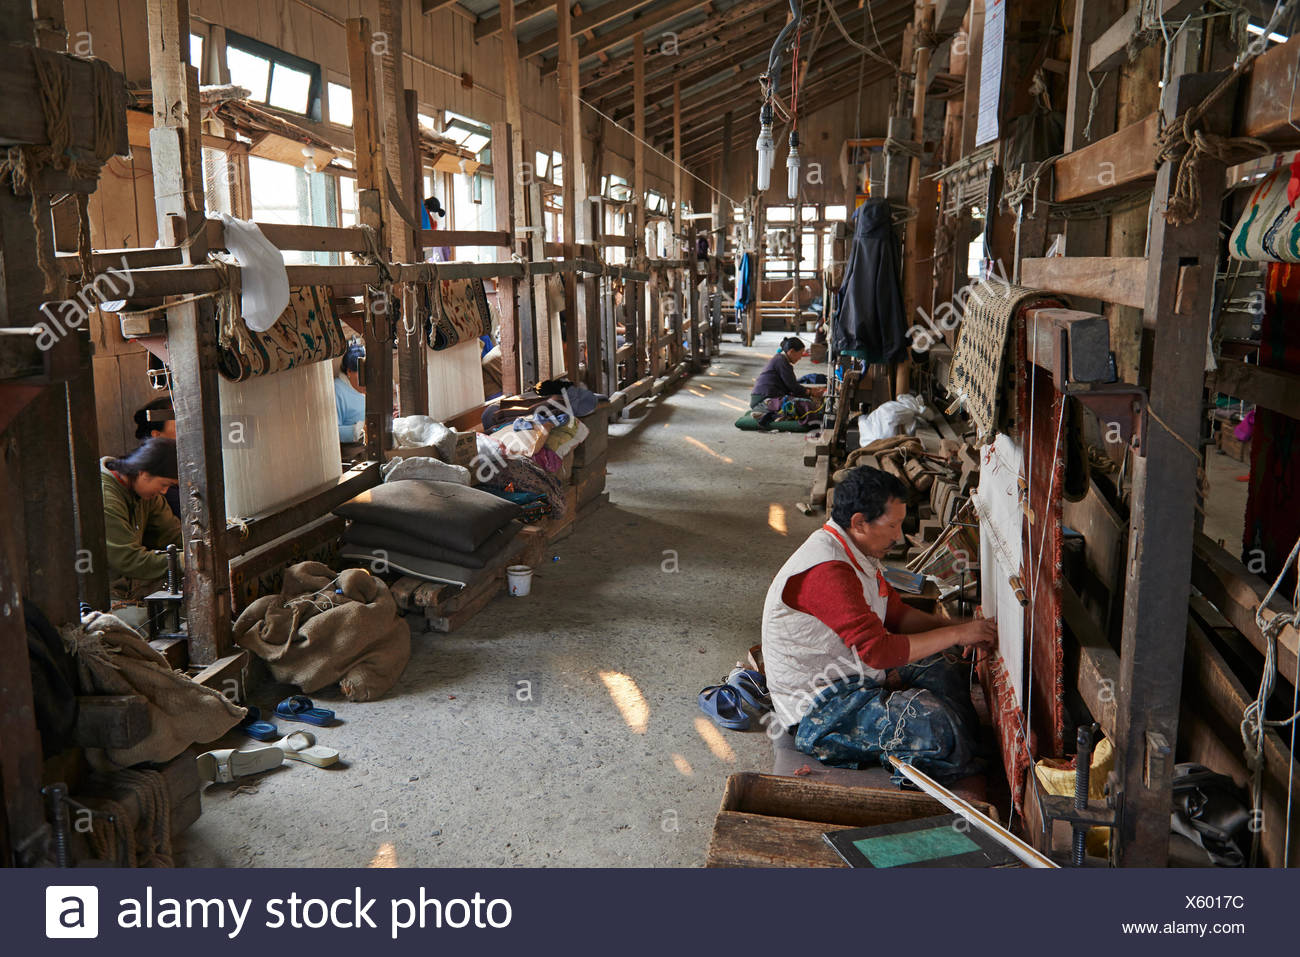 Men and a woman weaving rugs at the Tibetan Refugee and Self Help Center. - Stock Image